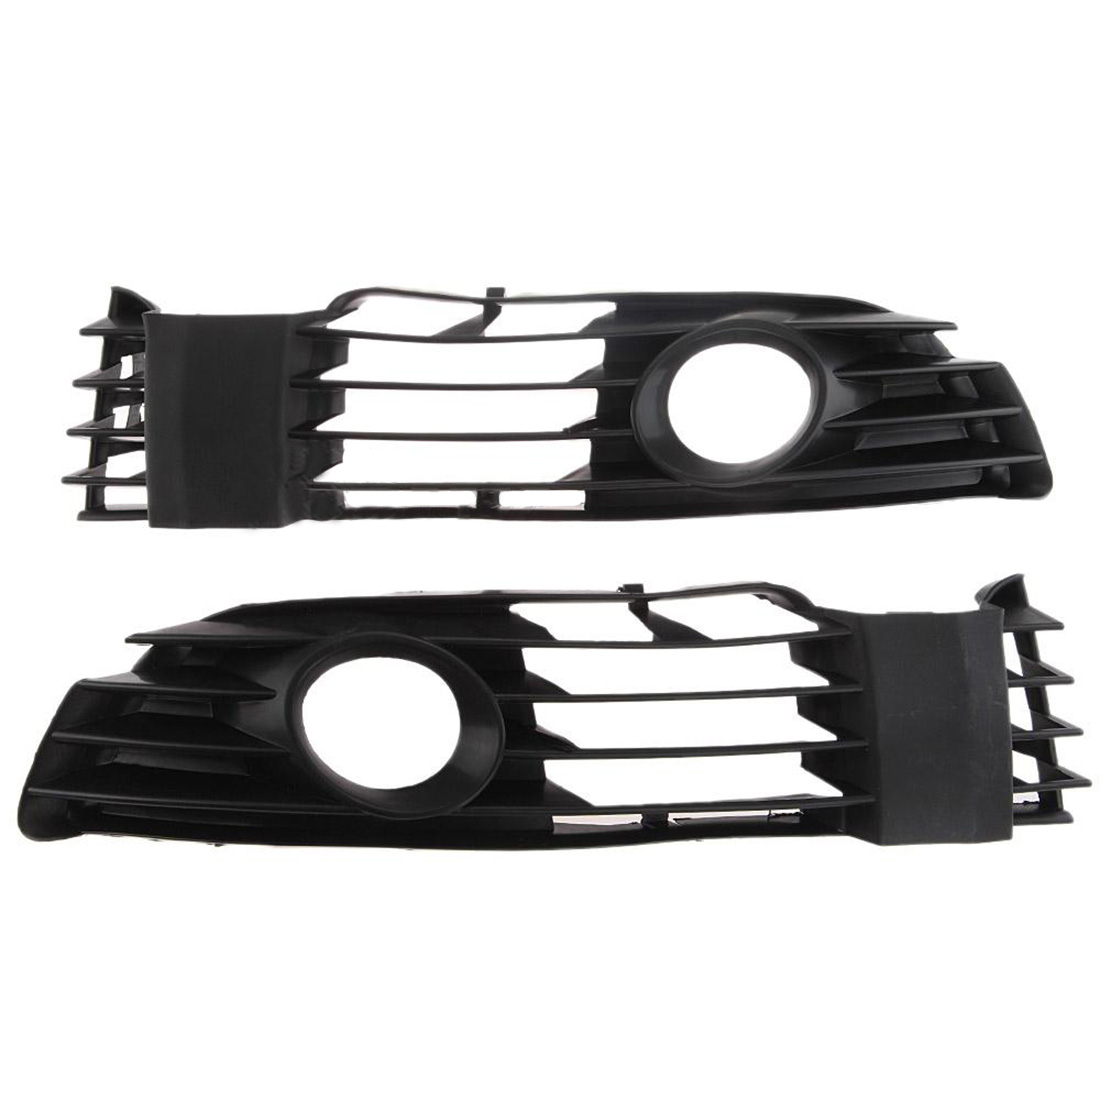 Dewtreetali 2Pcs/set Replacement Front Bumper Fog Light Grill Fog Light Cover Grille Protector For Vw Passat B5 01-05Dewtreetali 2Pcs/set Replacement Front Bumper Fog Light Grill Fog Light Cover Grille Protector For Vw Passat B5 01-05